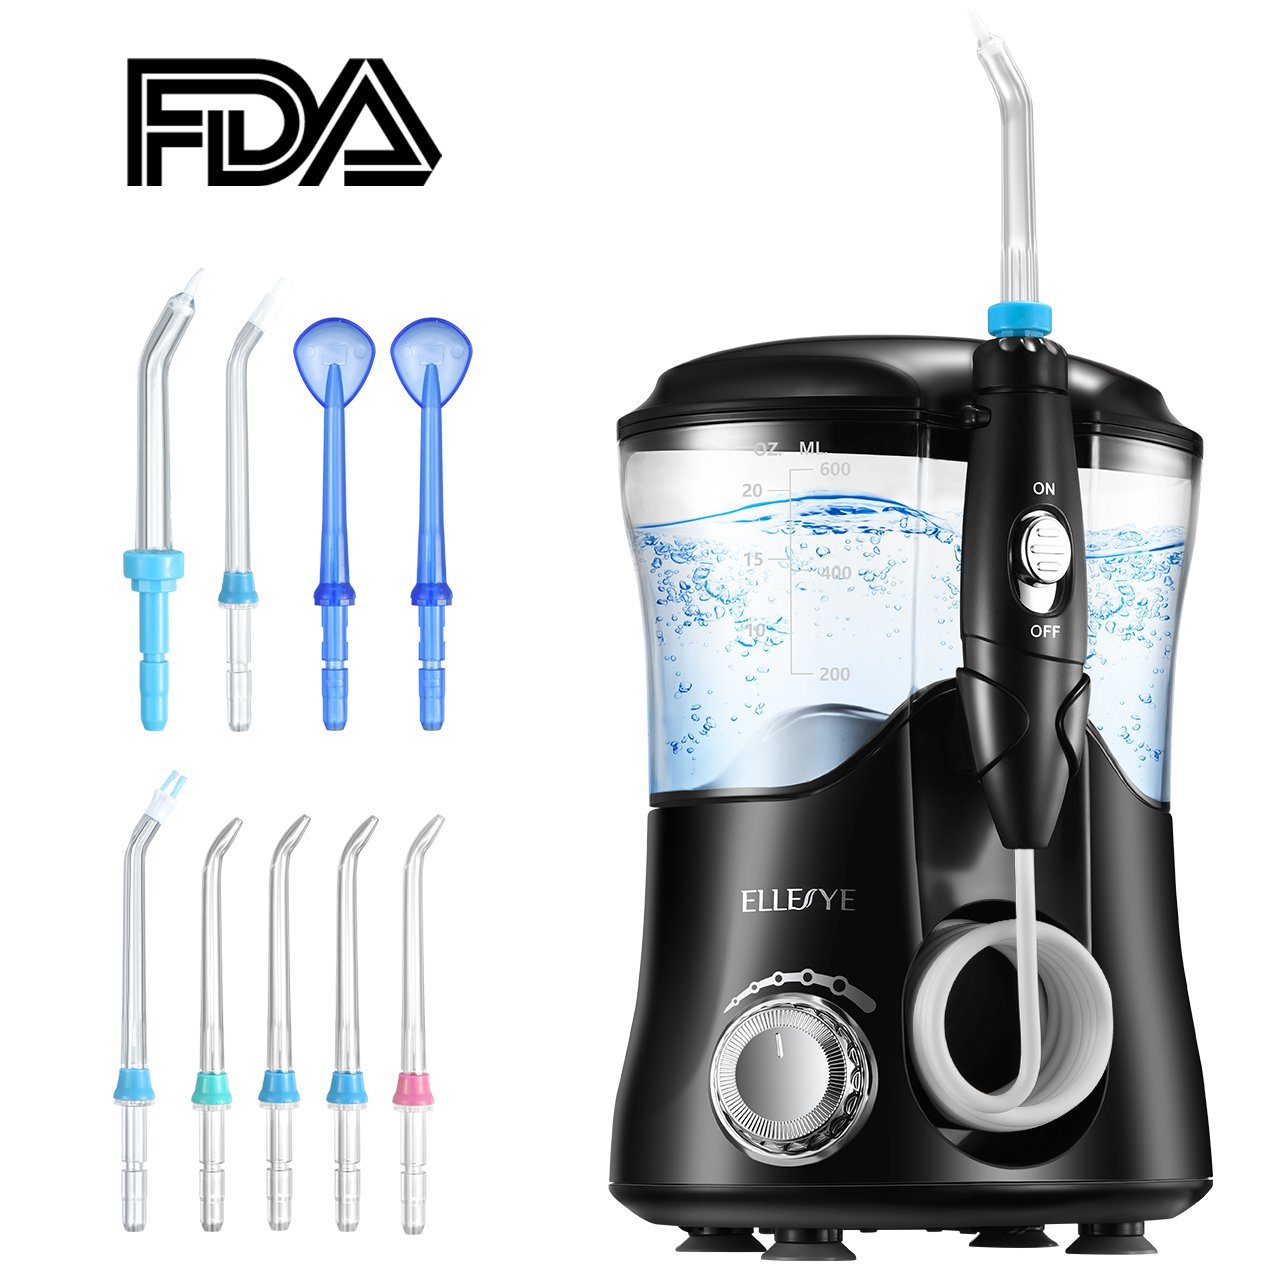 Water Flosser, ELLESYE FDA Approved 600ml Capacity Dental Oral Irrigator with 9 Multifunctional Jet Tips for Family Use, Leak-Proof Quiet Design (50db) Dental Flosser, 10 Stepless Pressure Settings